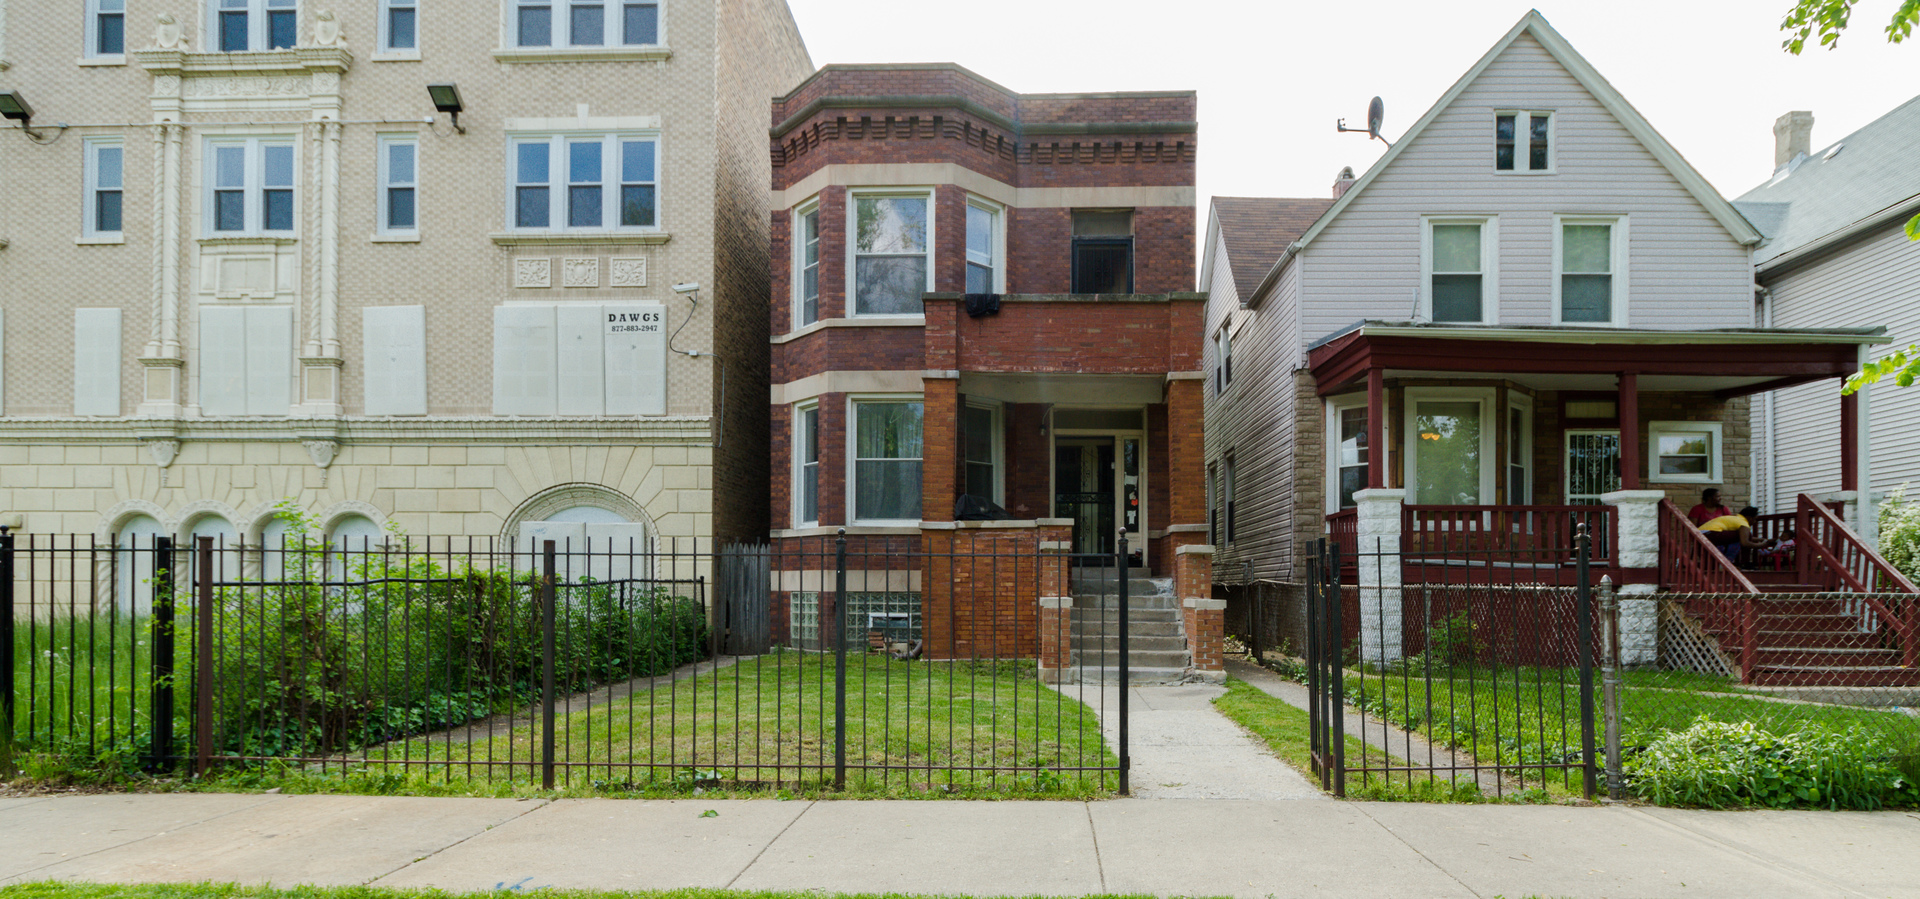 7142 South LOWE, CHICAGO, Illinois, 60621